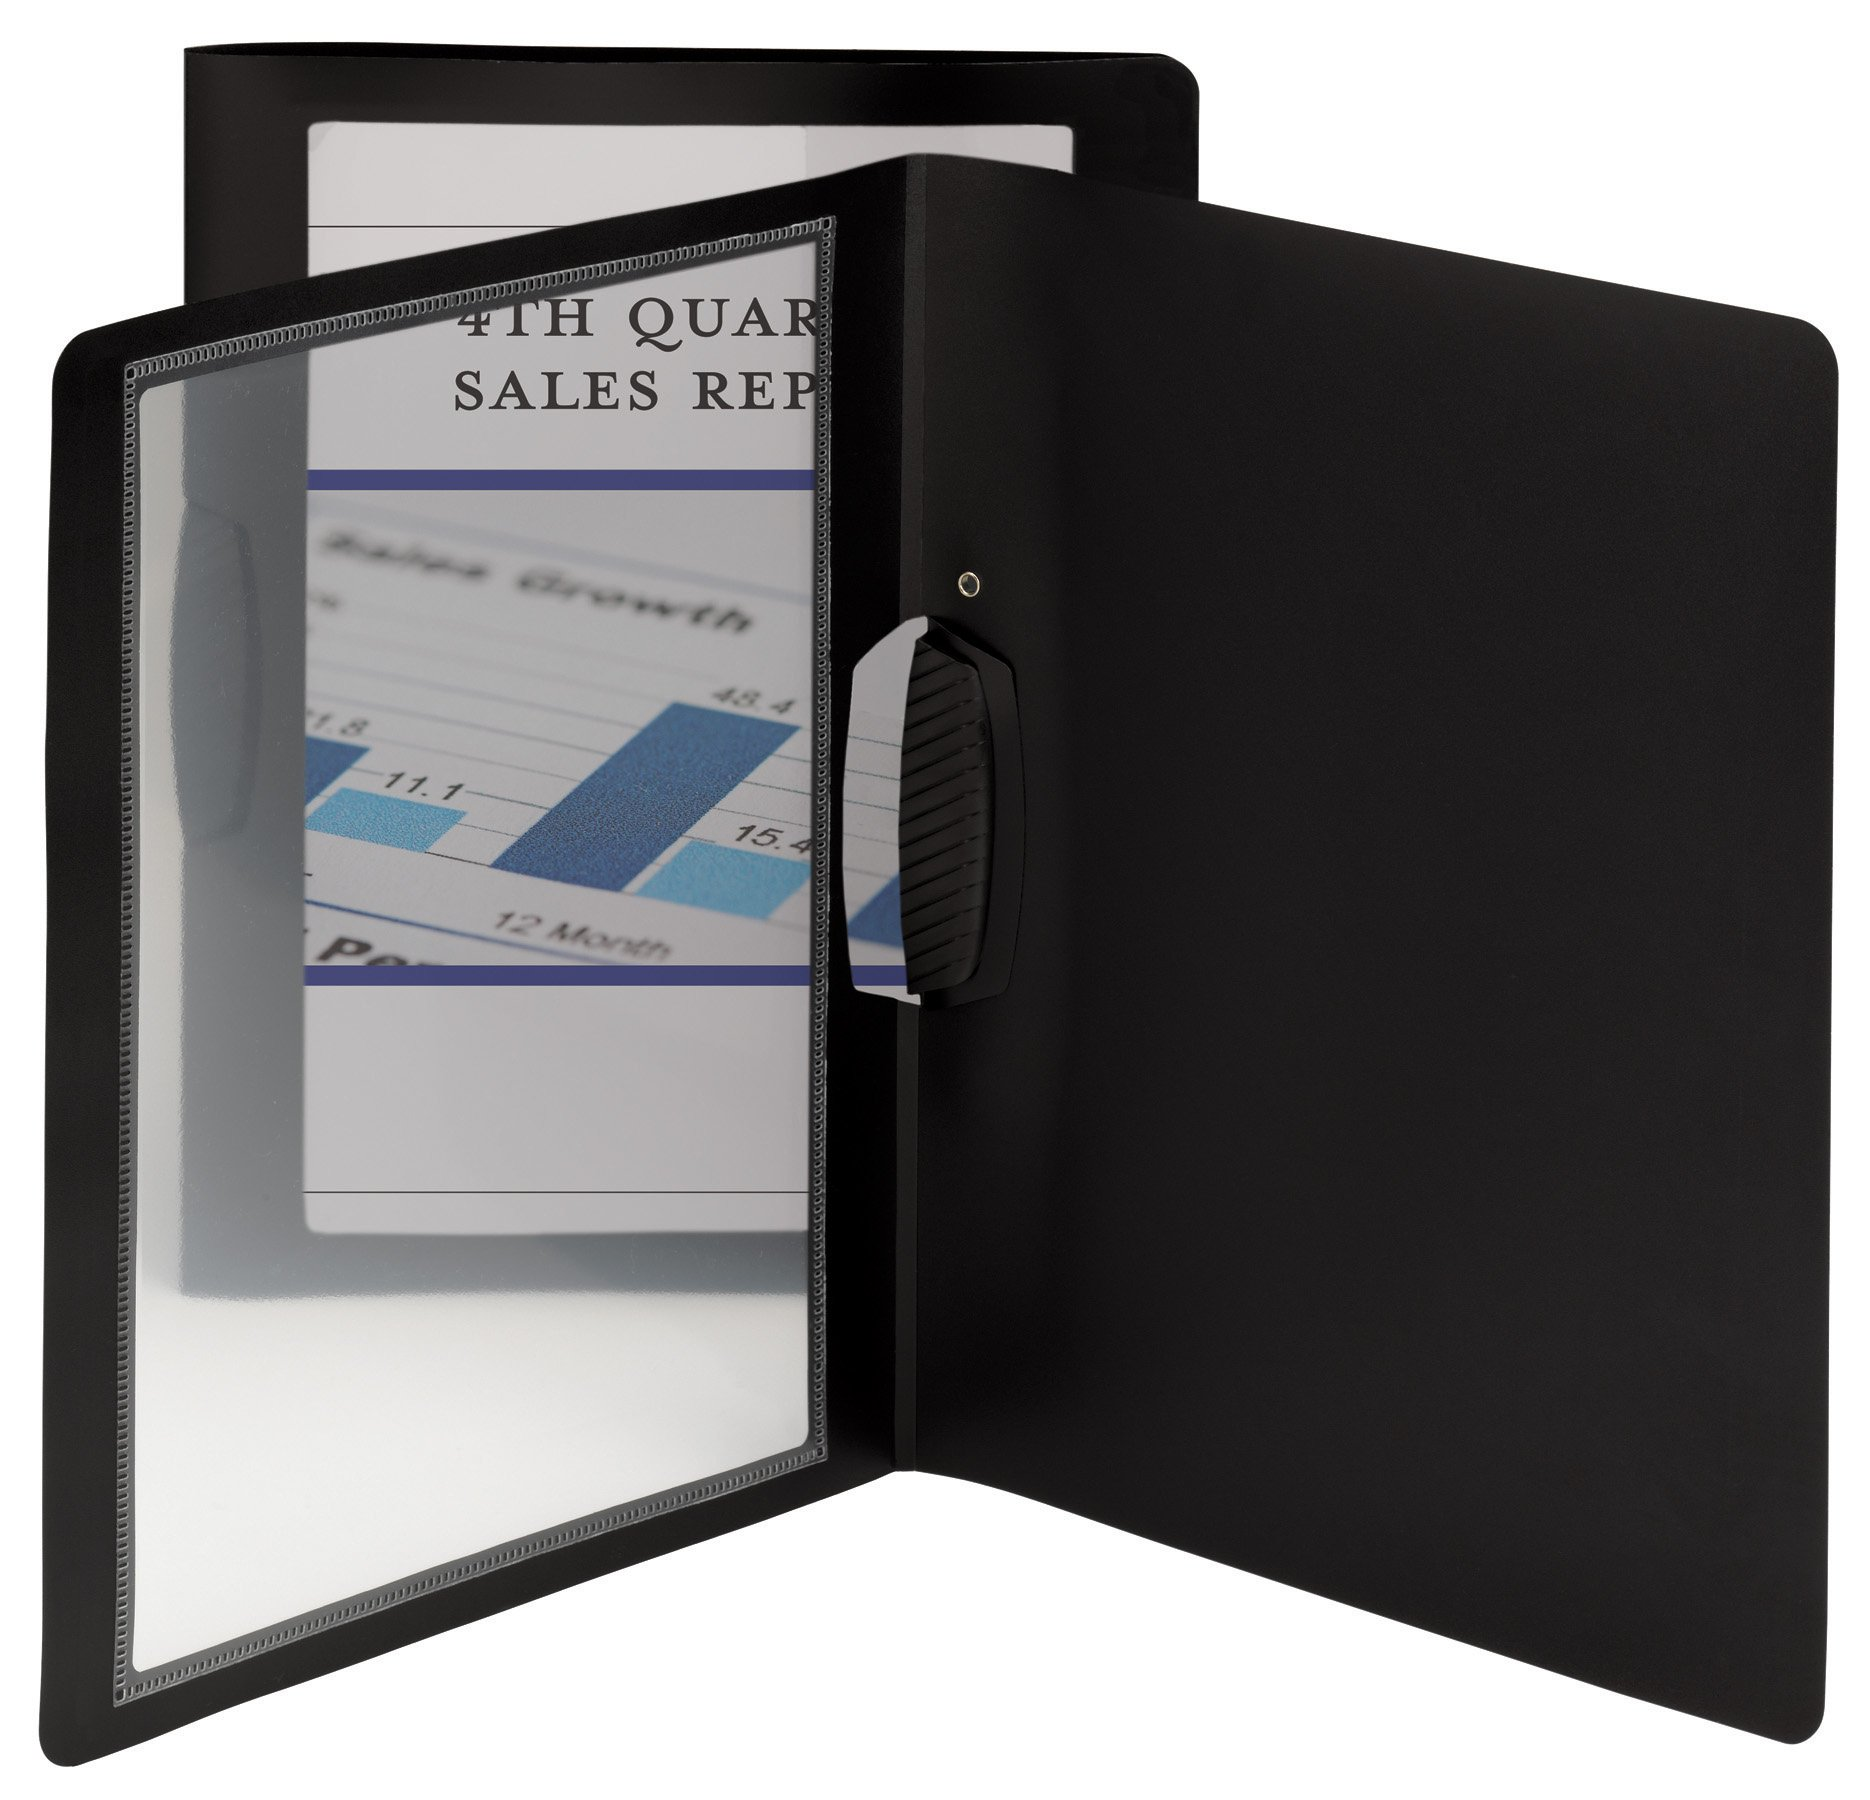 Smead Frame View Poly Report Cover with Swing Clip, Side Fastener, Up to 30 Sheets, Letter Size (Portrait Orientation), Black/Clear Front, 5 per Pack (86043)